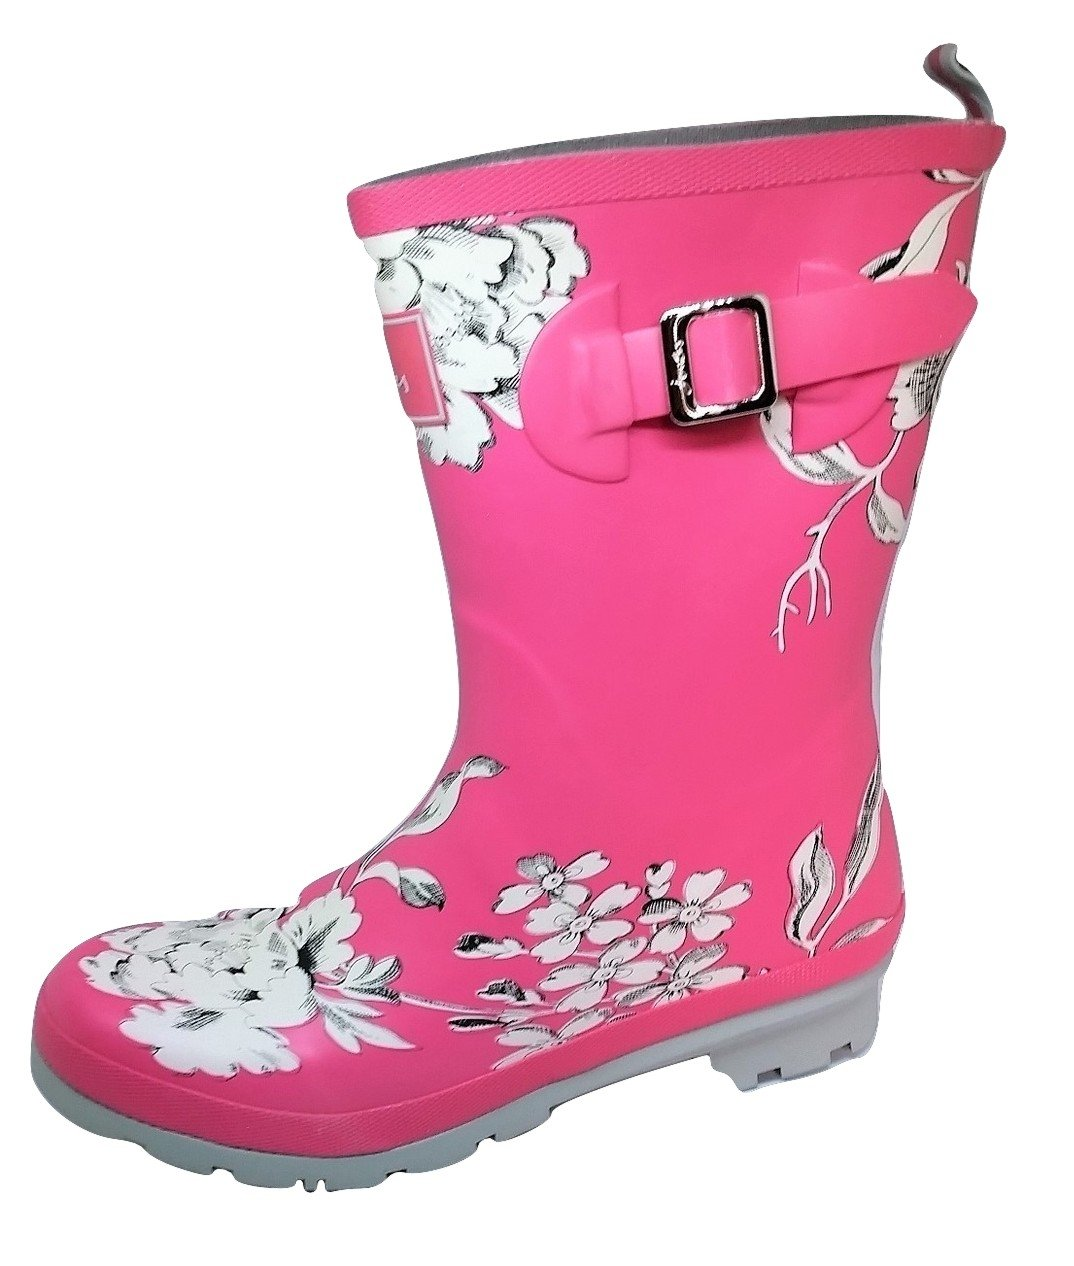 Joules Women's Molly Welly Rain Boot Pink B071FFPF4L 10 B(M) US|Triple Pink Boot Floral a18048